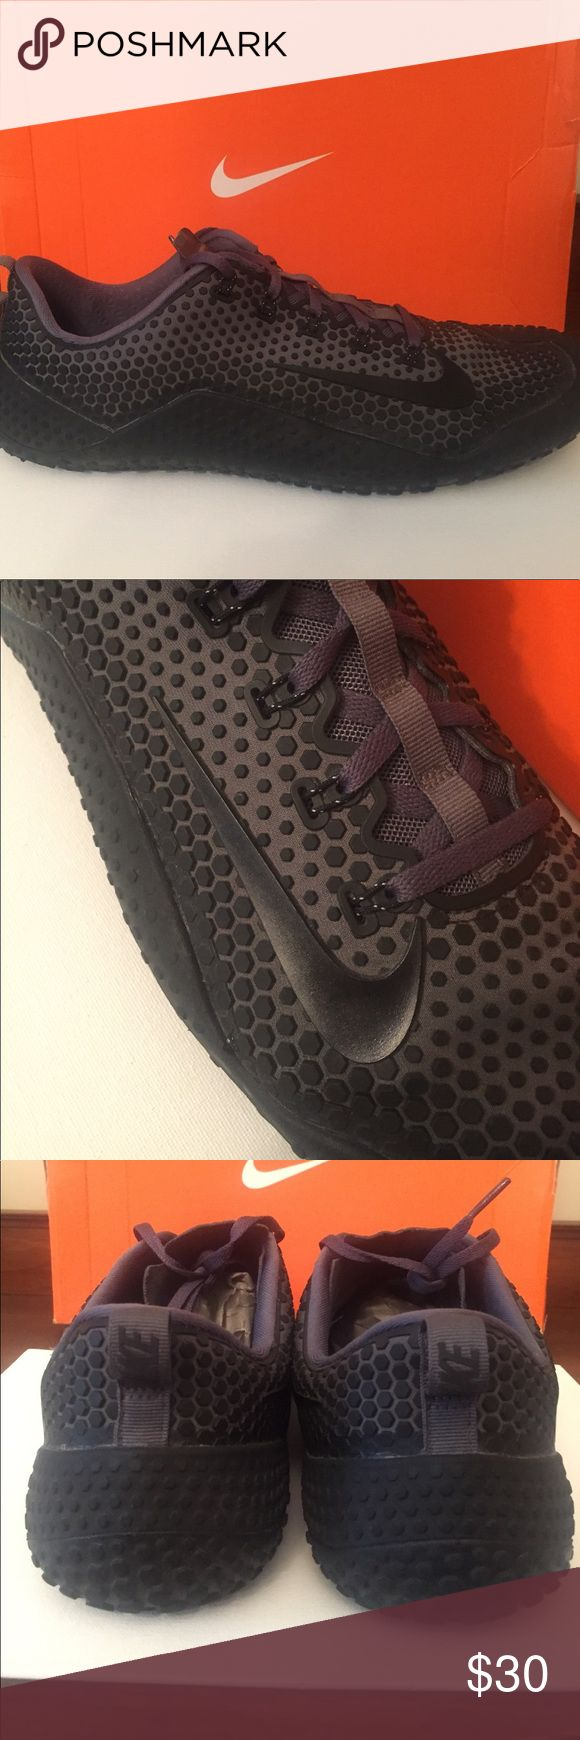 Nike Free Trainer 1.0 shoes. Sz 13. Gray/Blk Nike Free Trainer 1.0. Black/Gray. Size 13.  Retail for $125! Nike Shoes Sneakers